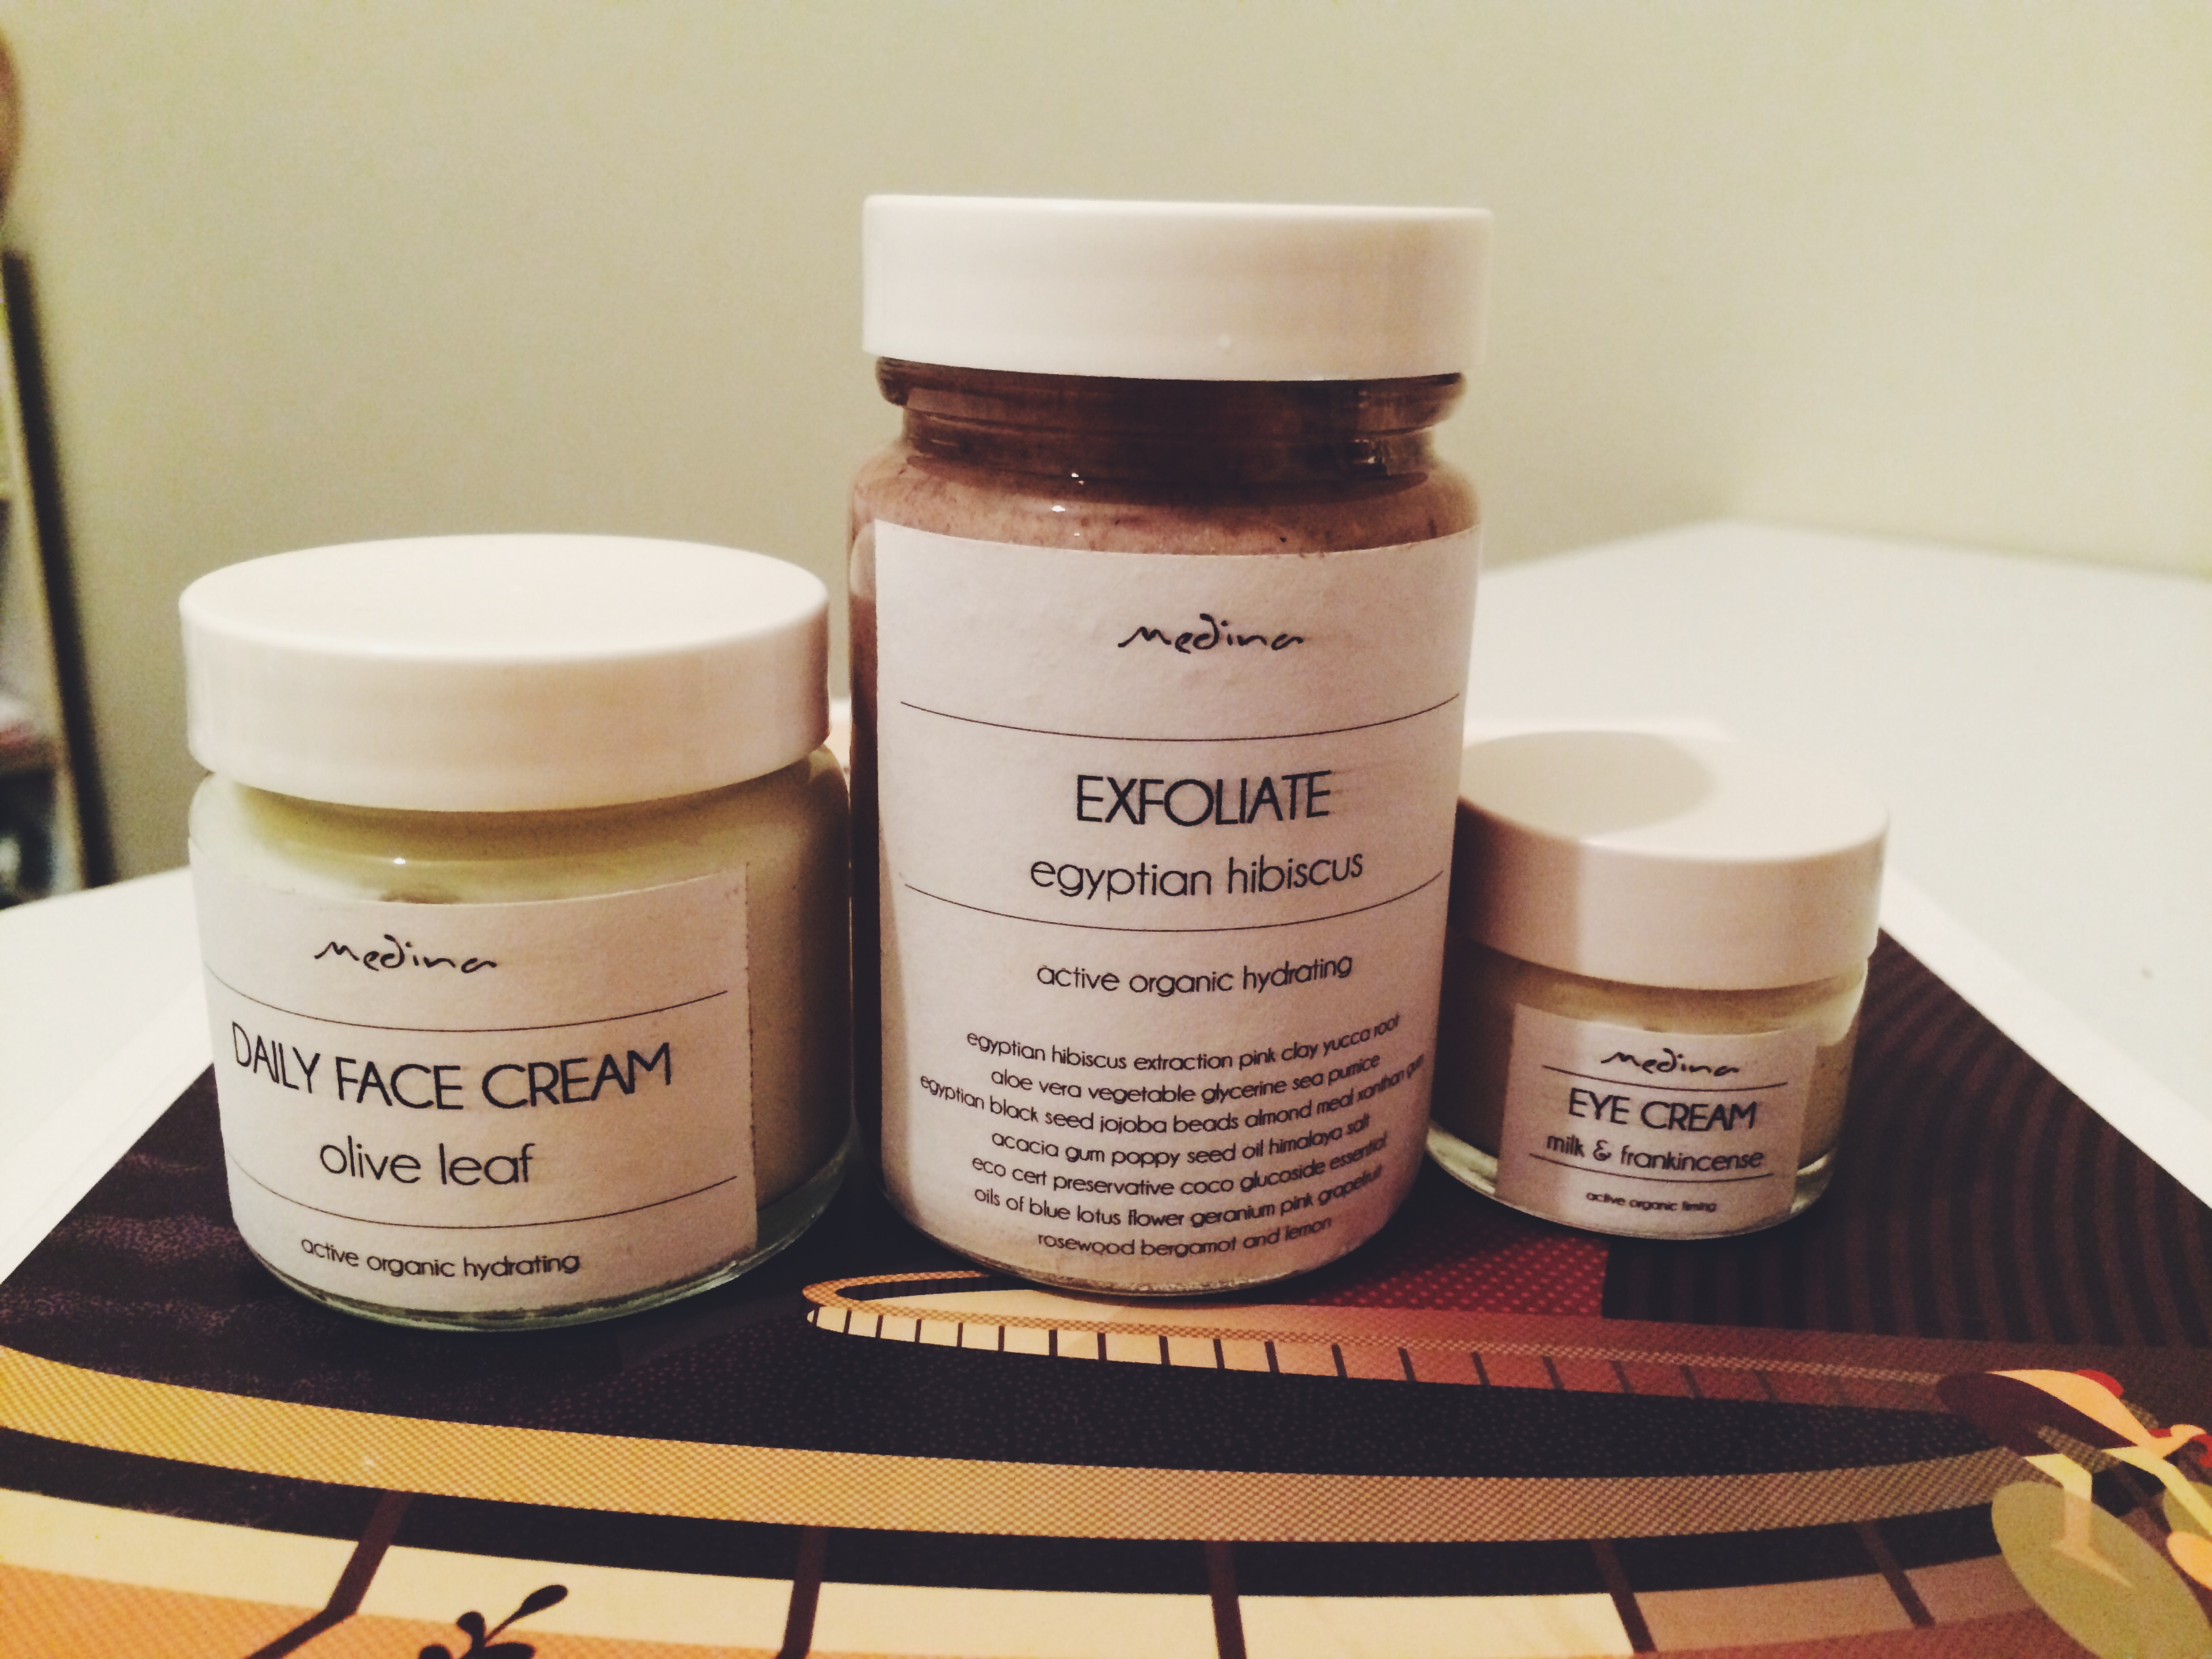 Incredible Medina products: Daily Face Cream, Exfoliate, Eye Crem